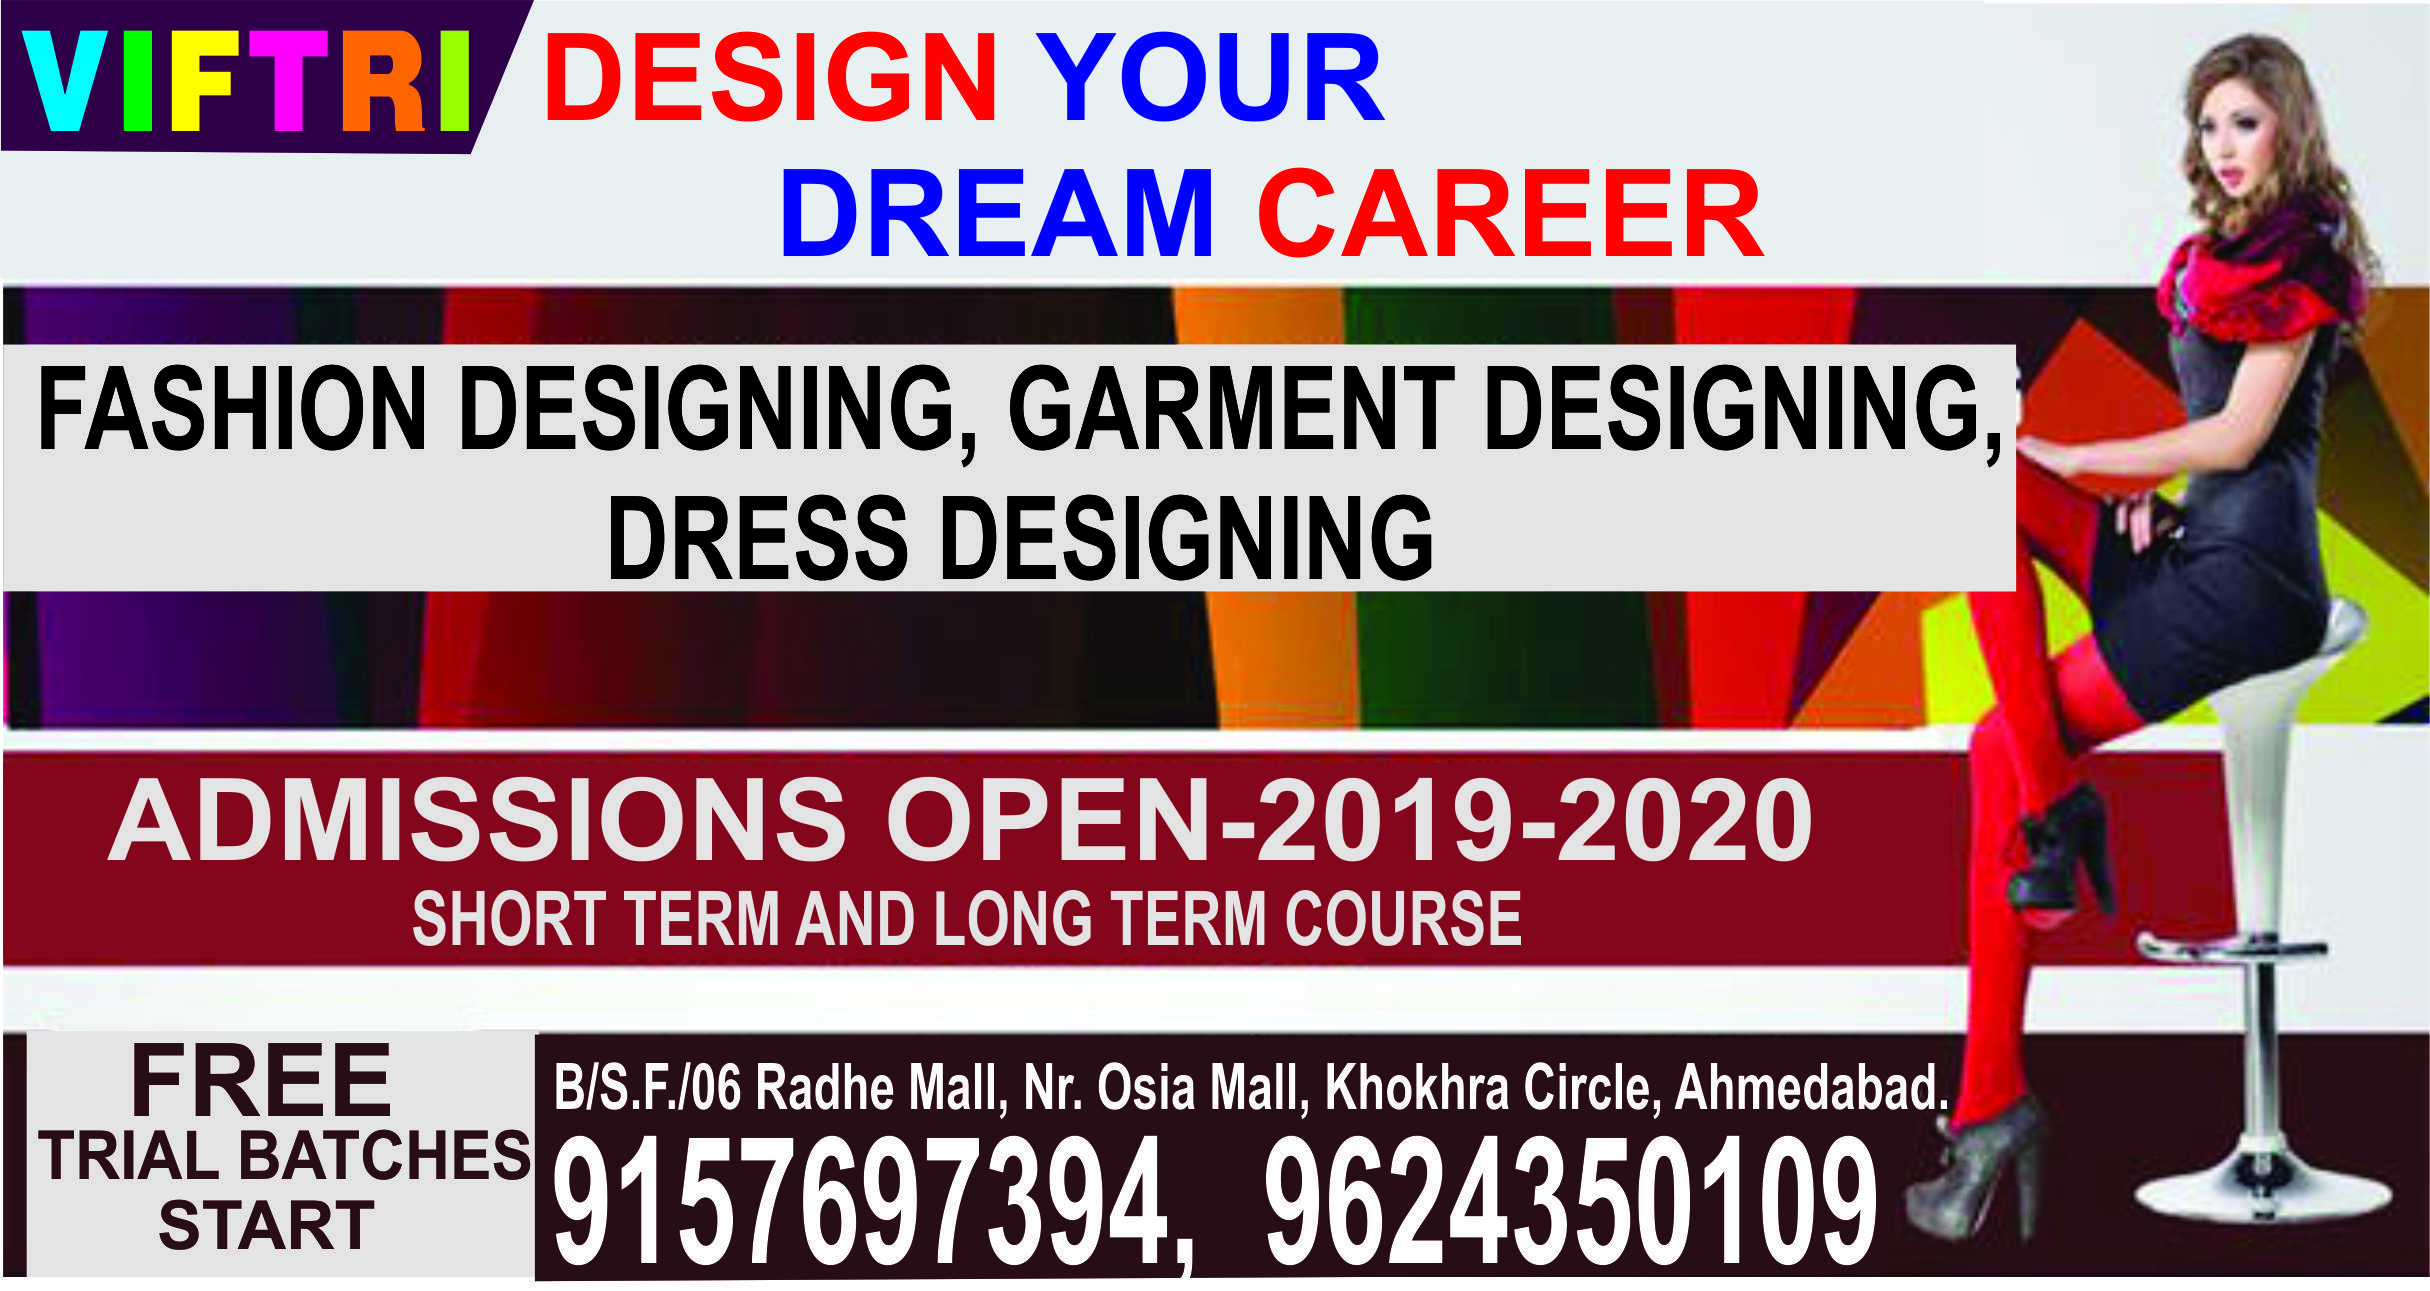 Fashion Desigming Career Fashion Technology Fashion Fashion